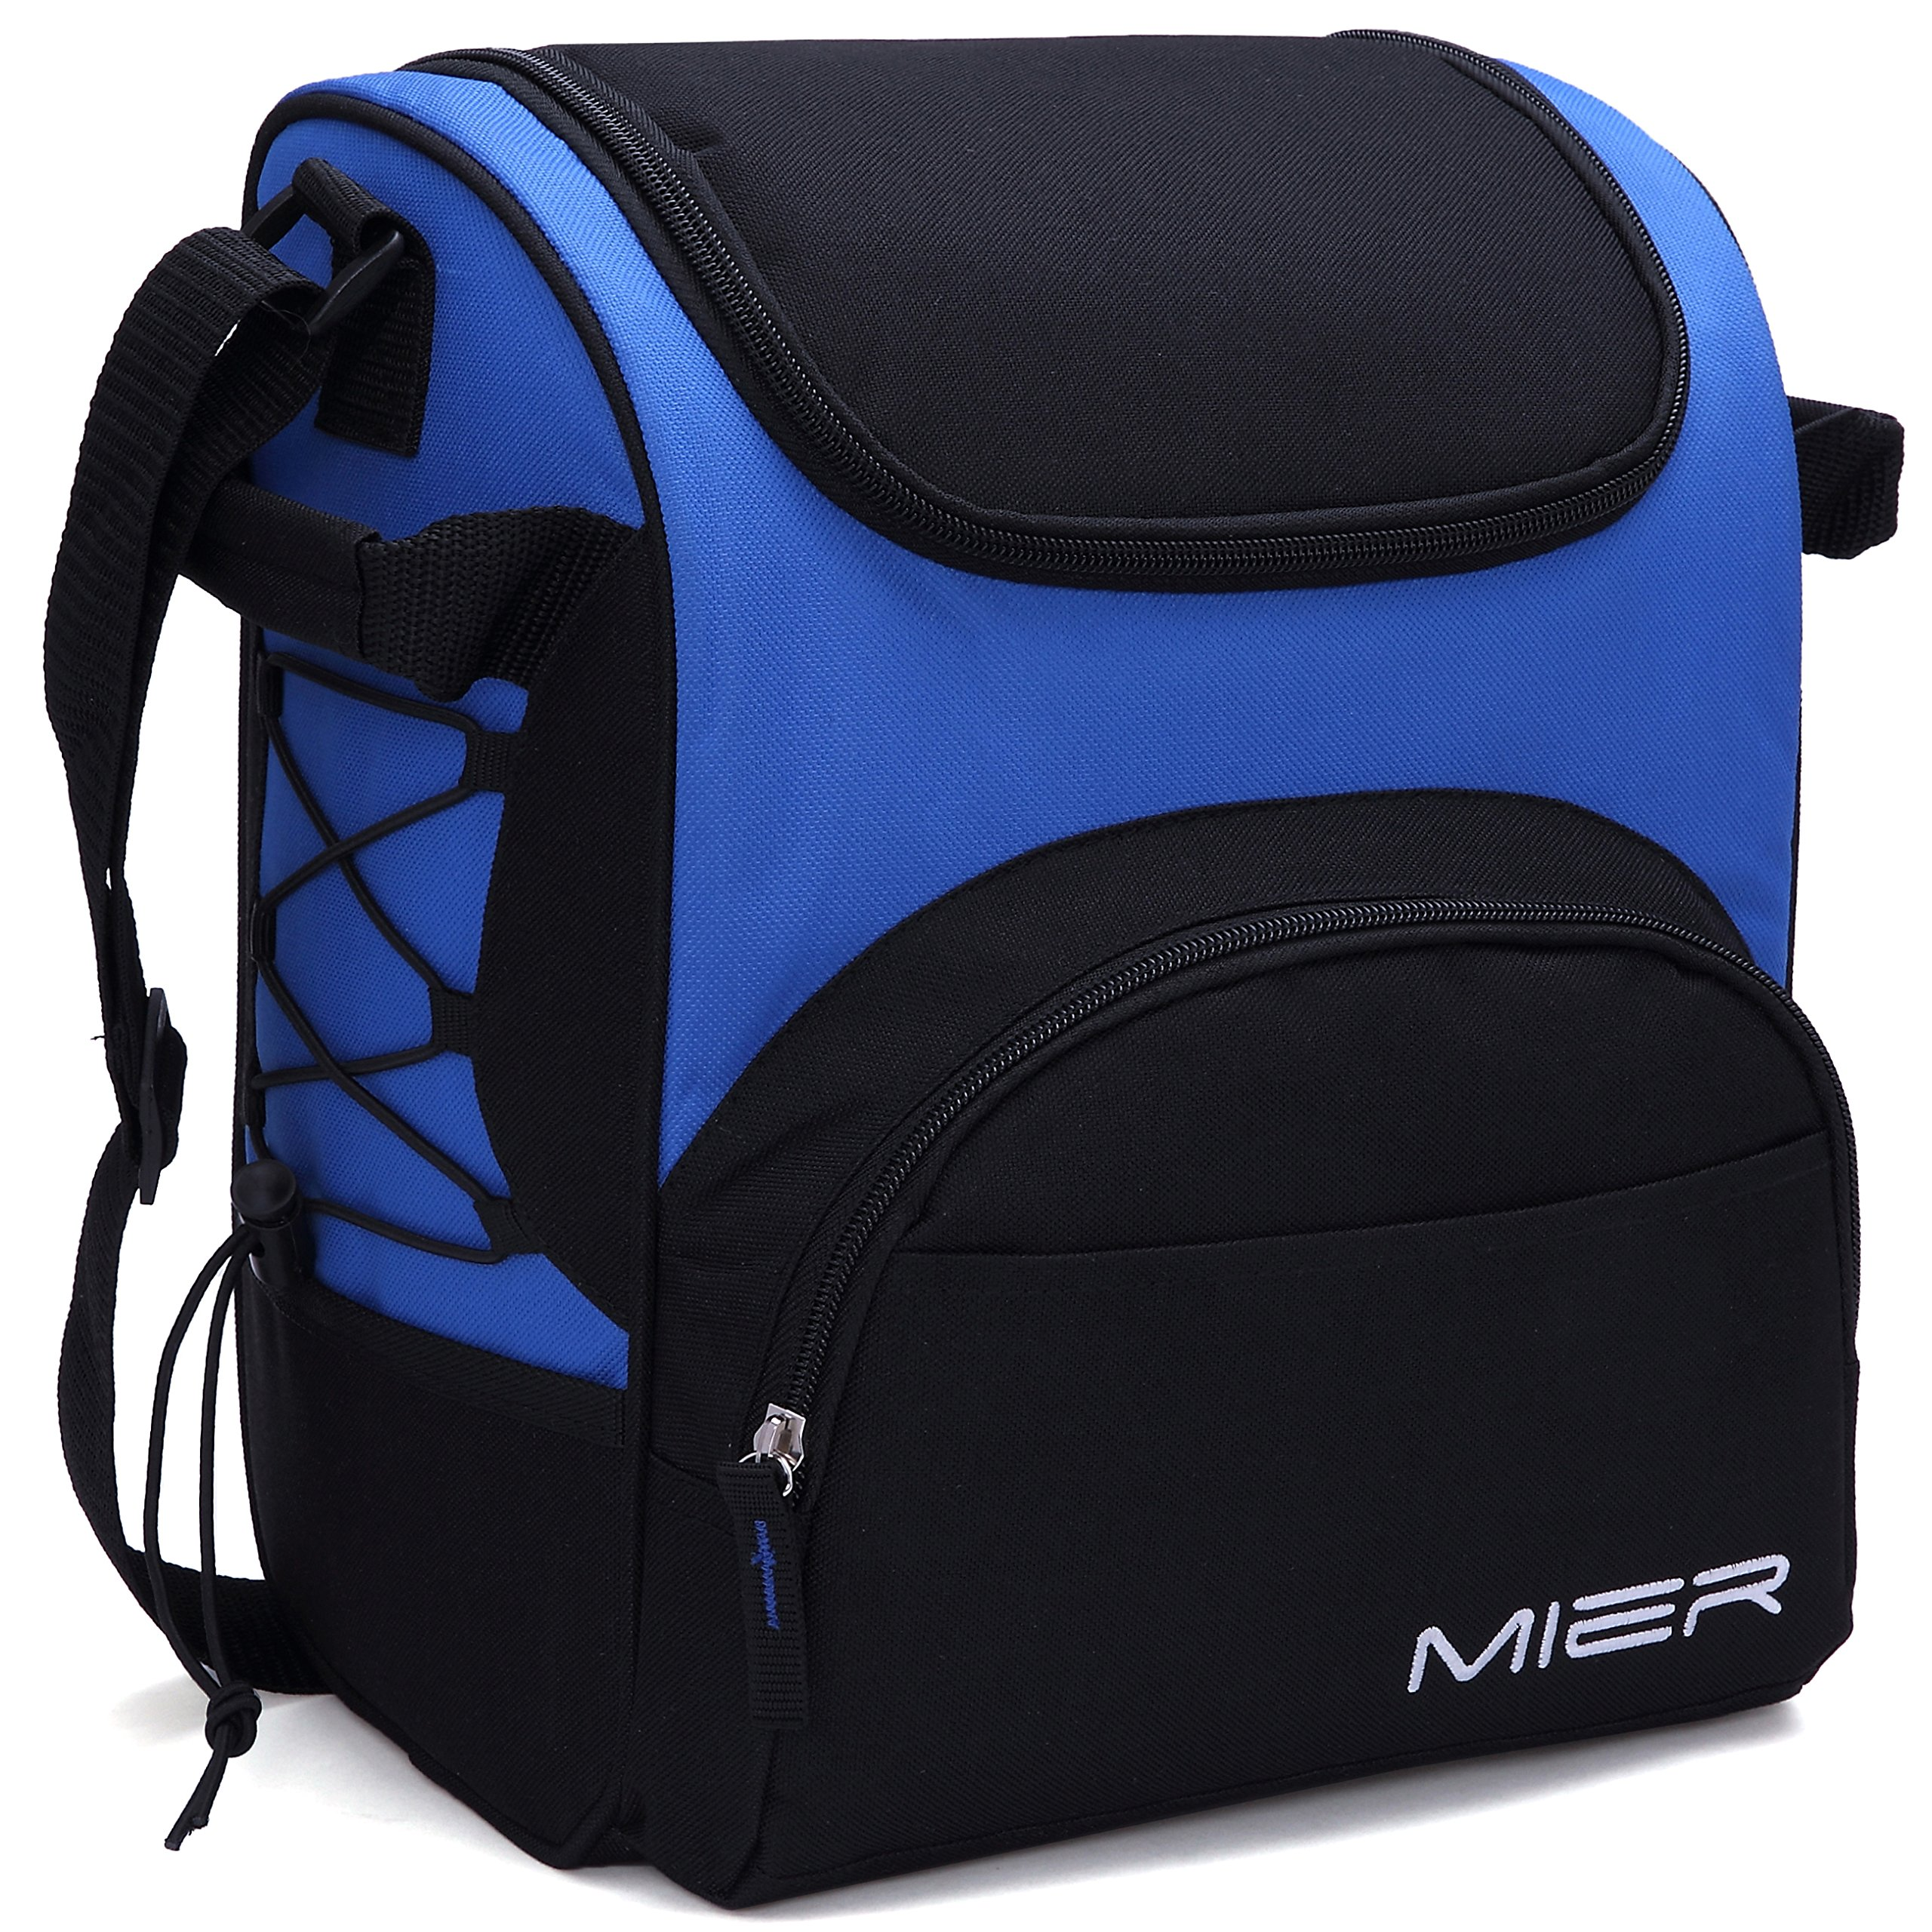 93af4b03be41 Details about MIER Large Insulated Lunch Bag Reusable Lunch Box Picnic  Cooler Bag for Men,